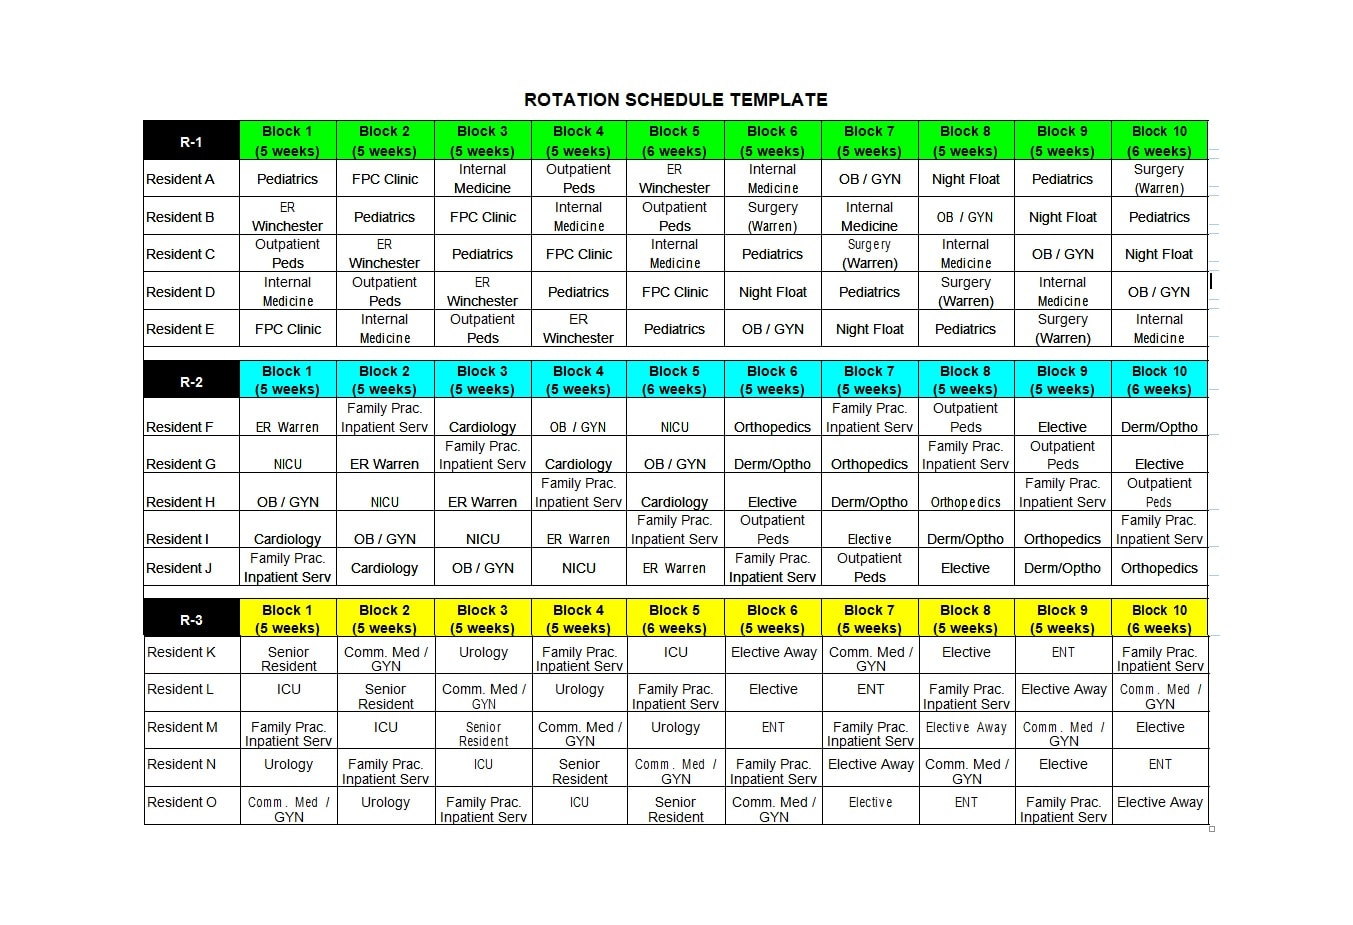 50 Free Rotating Schedule Templates For Your Company regarding 4 5 4 Retail Calendar Printable